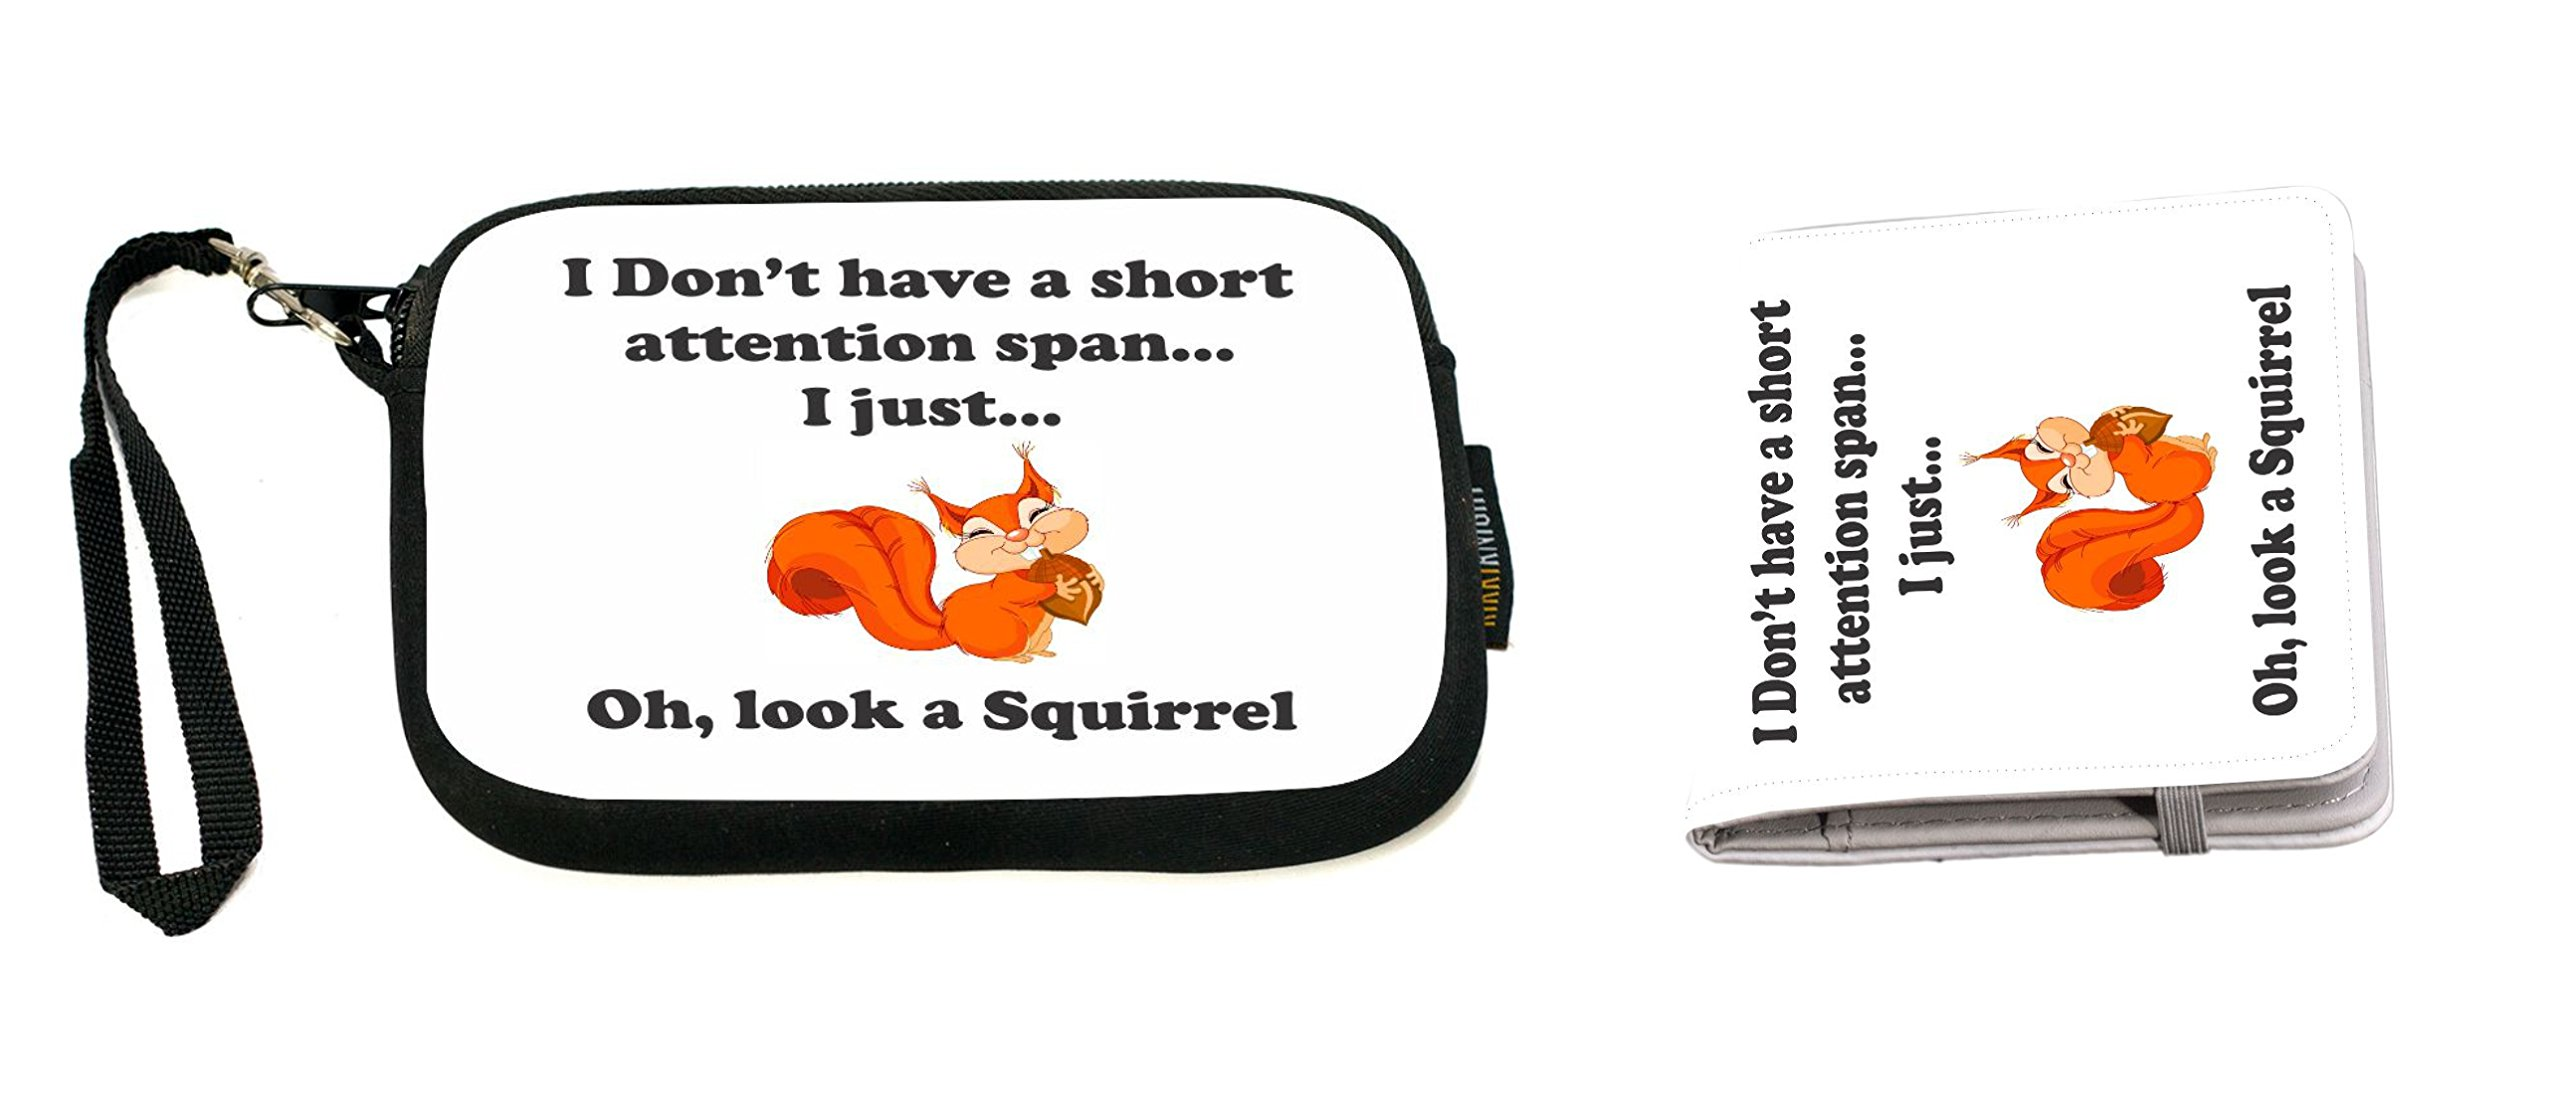 Rikki Knight Funny I Don't have a Short Attention Span Design Neoprene Clutch Wristlet with Matching Passport Holder